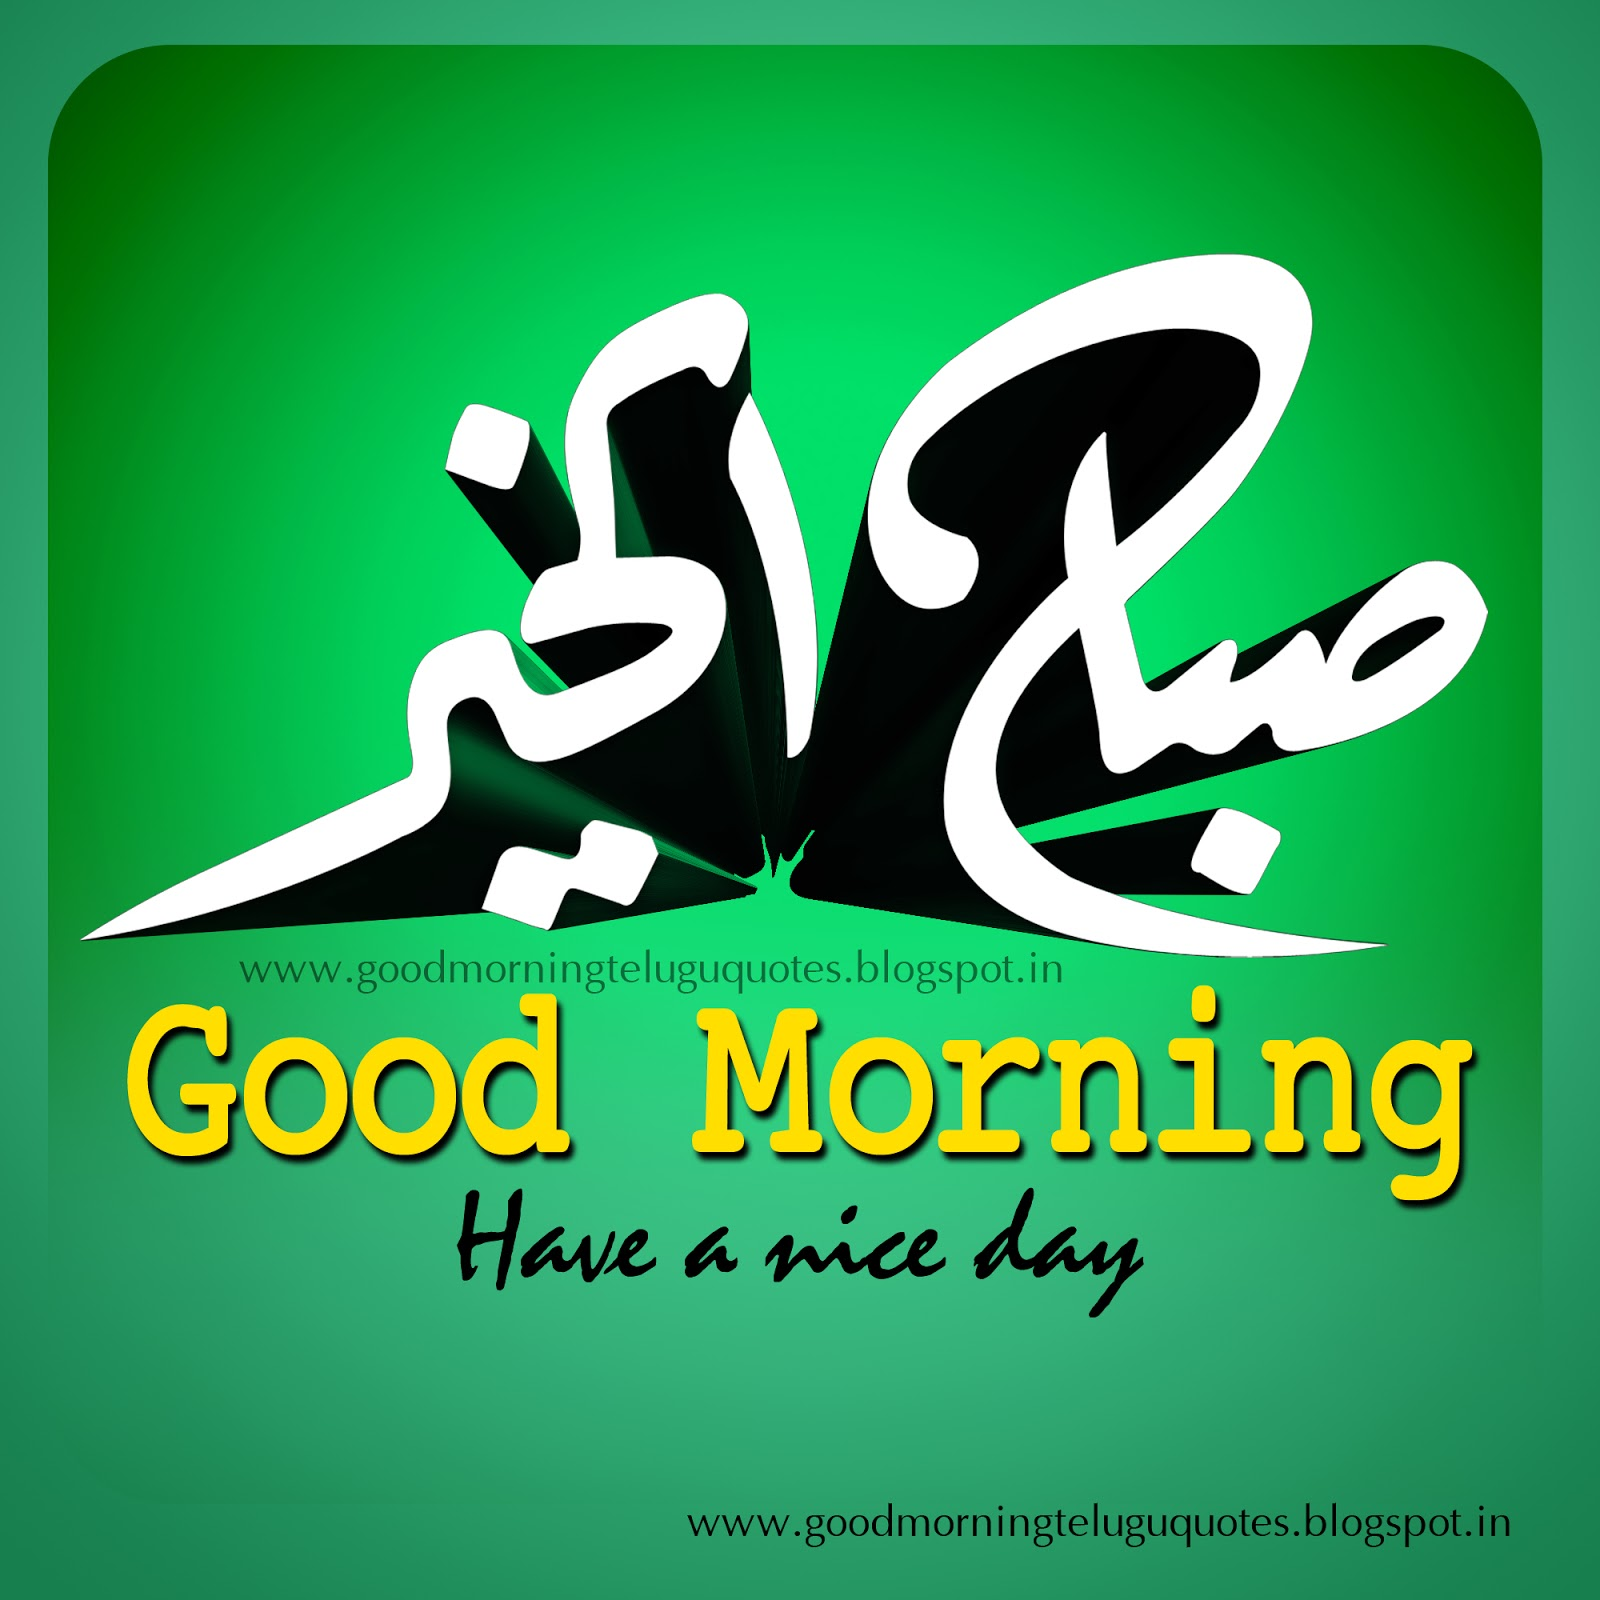 Good Morning Everyone In Arabic : Good morning images in arabic impremedia